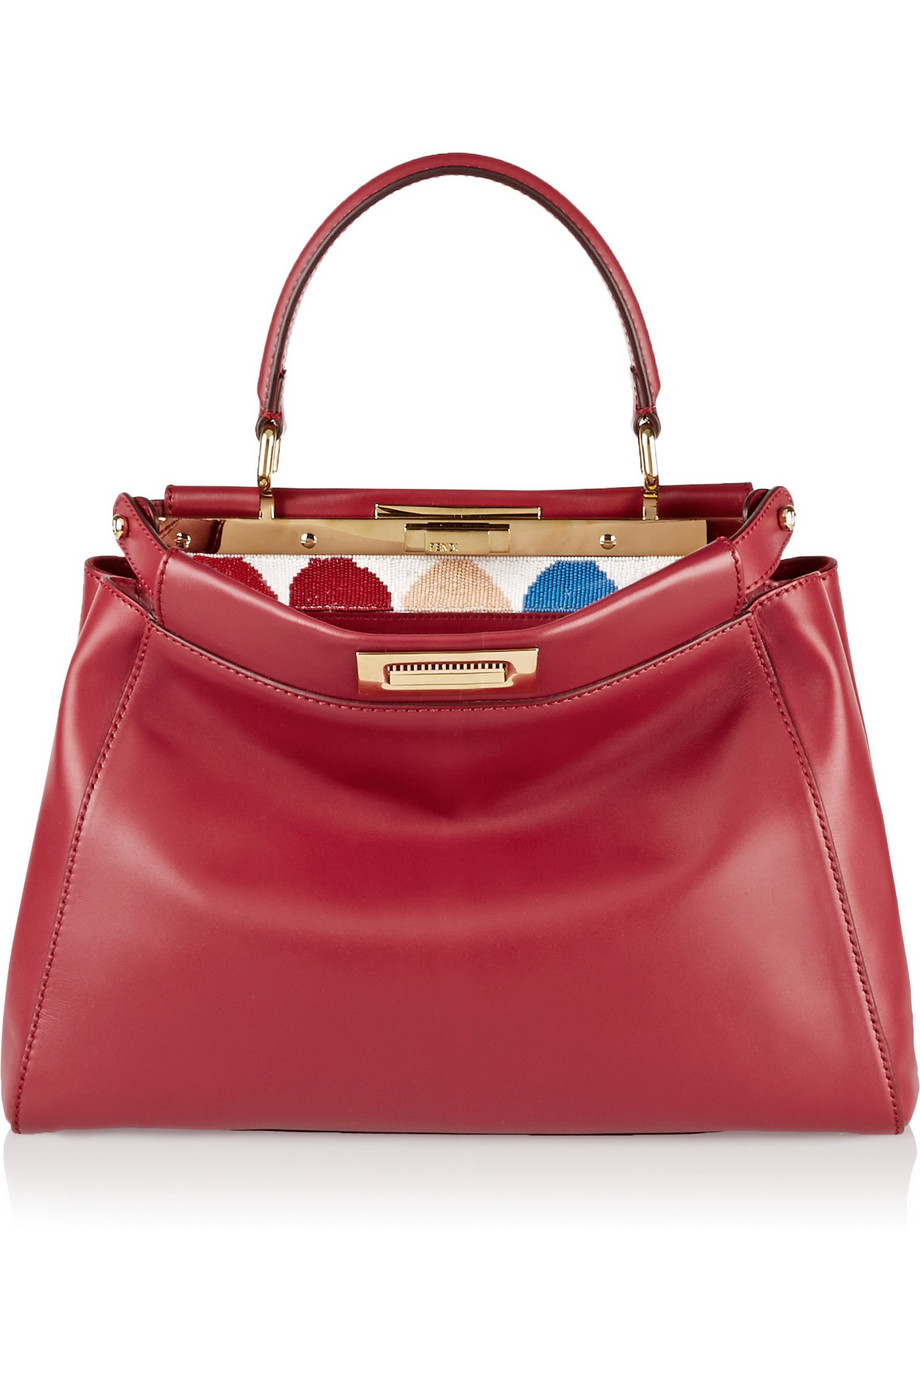 Fendi Peekaboo Medium Leather Tote, Red, Women's, Size: One Size